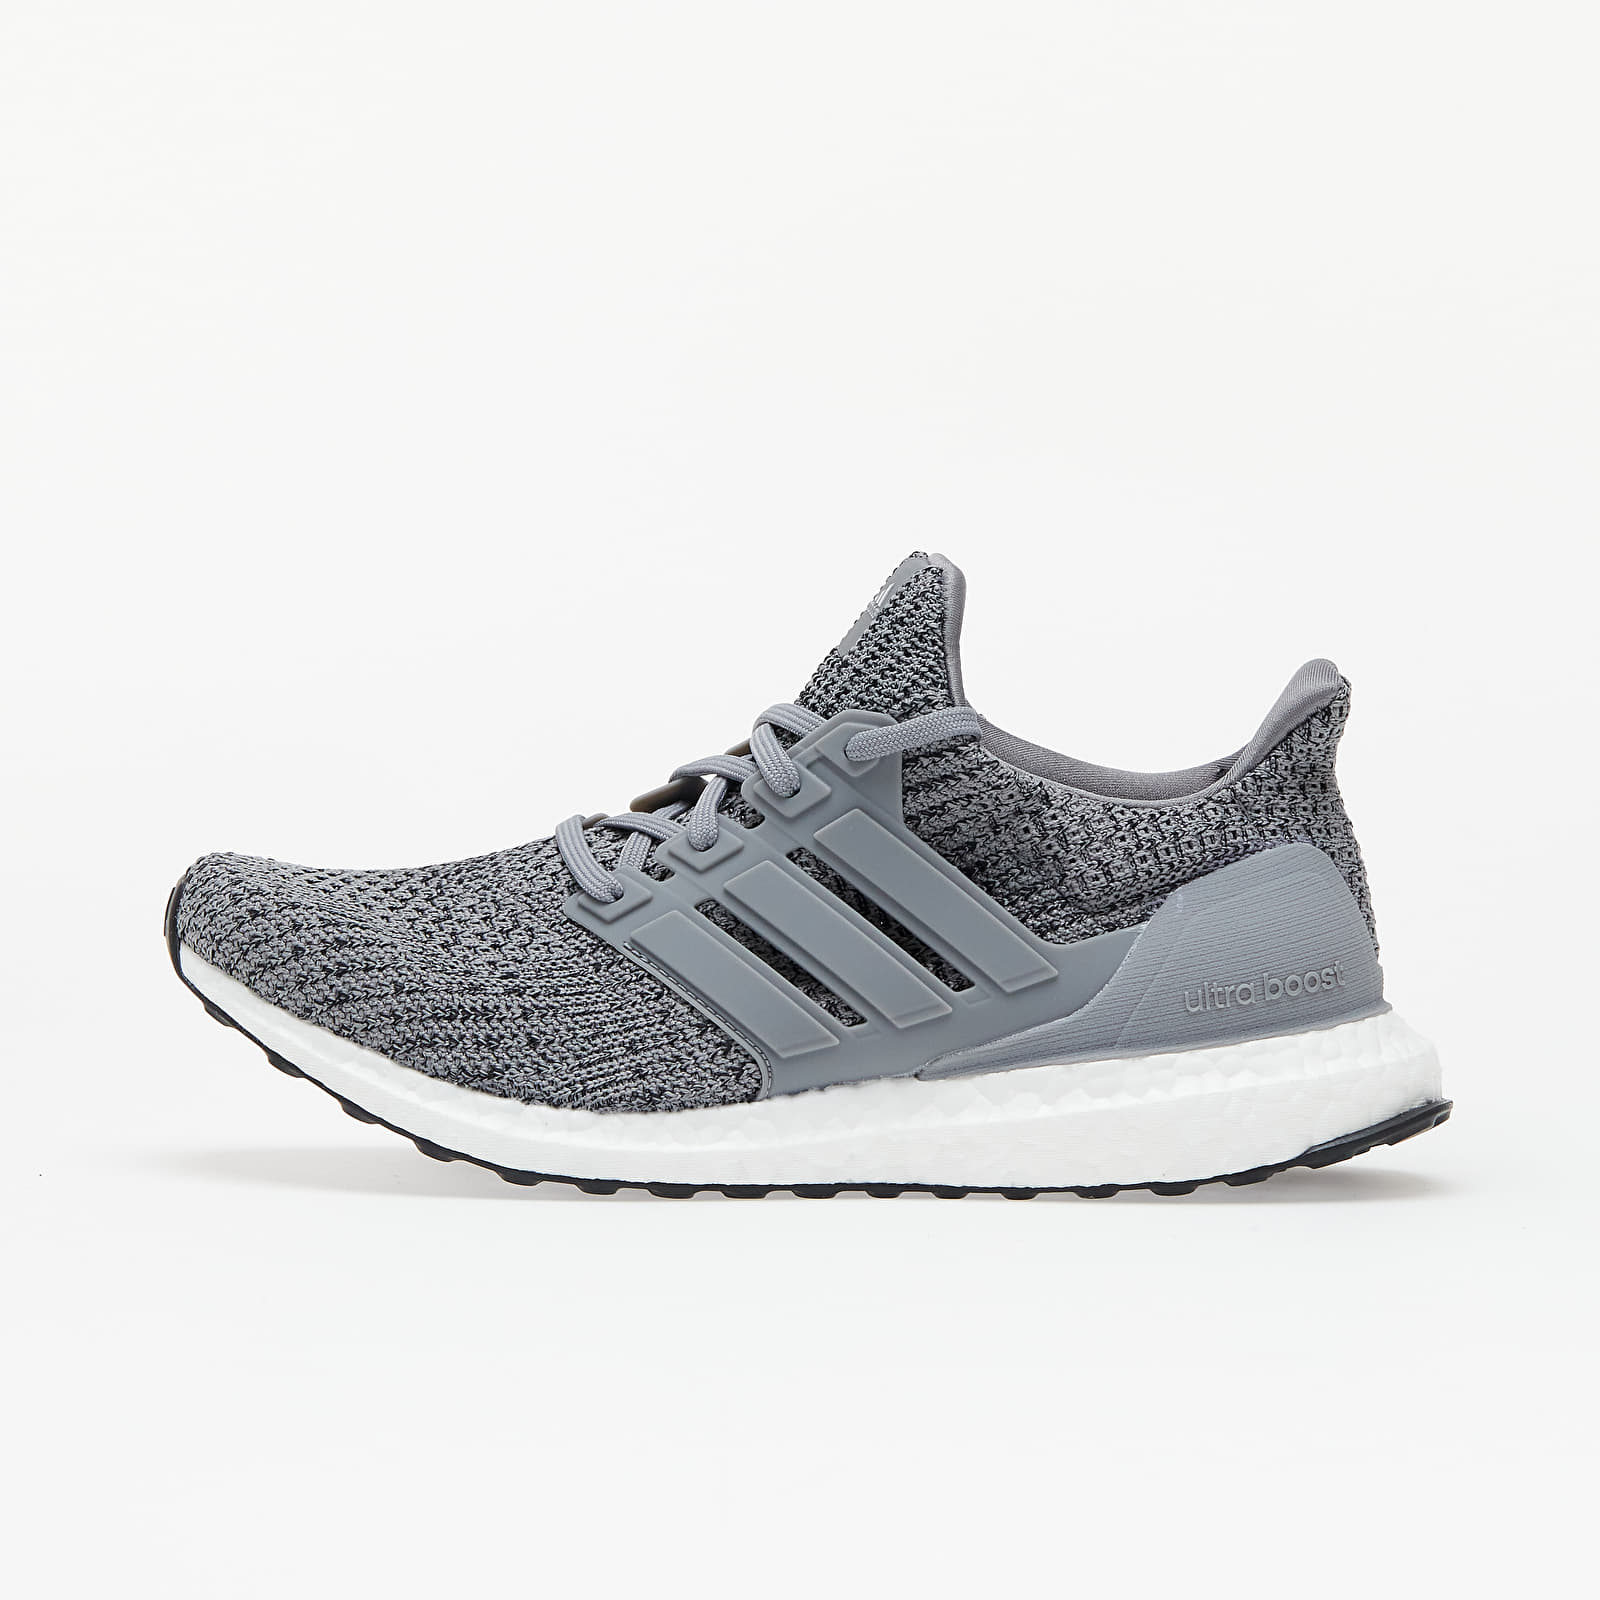 adidas UltraBOOST 4.0 DNA Grey Three/ Grey Three/ Core Black EUR 46